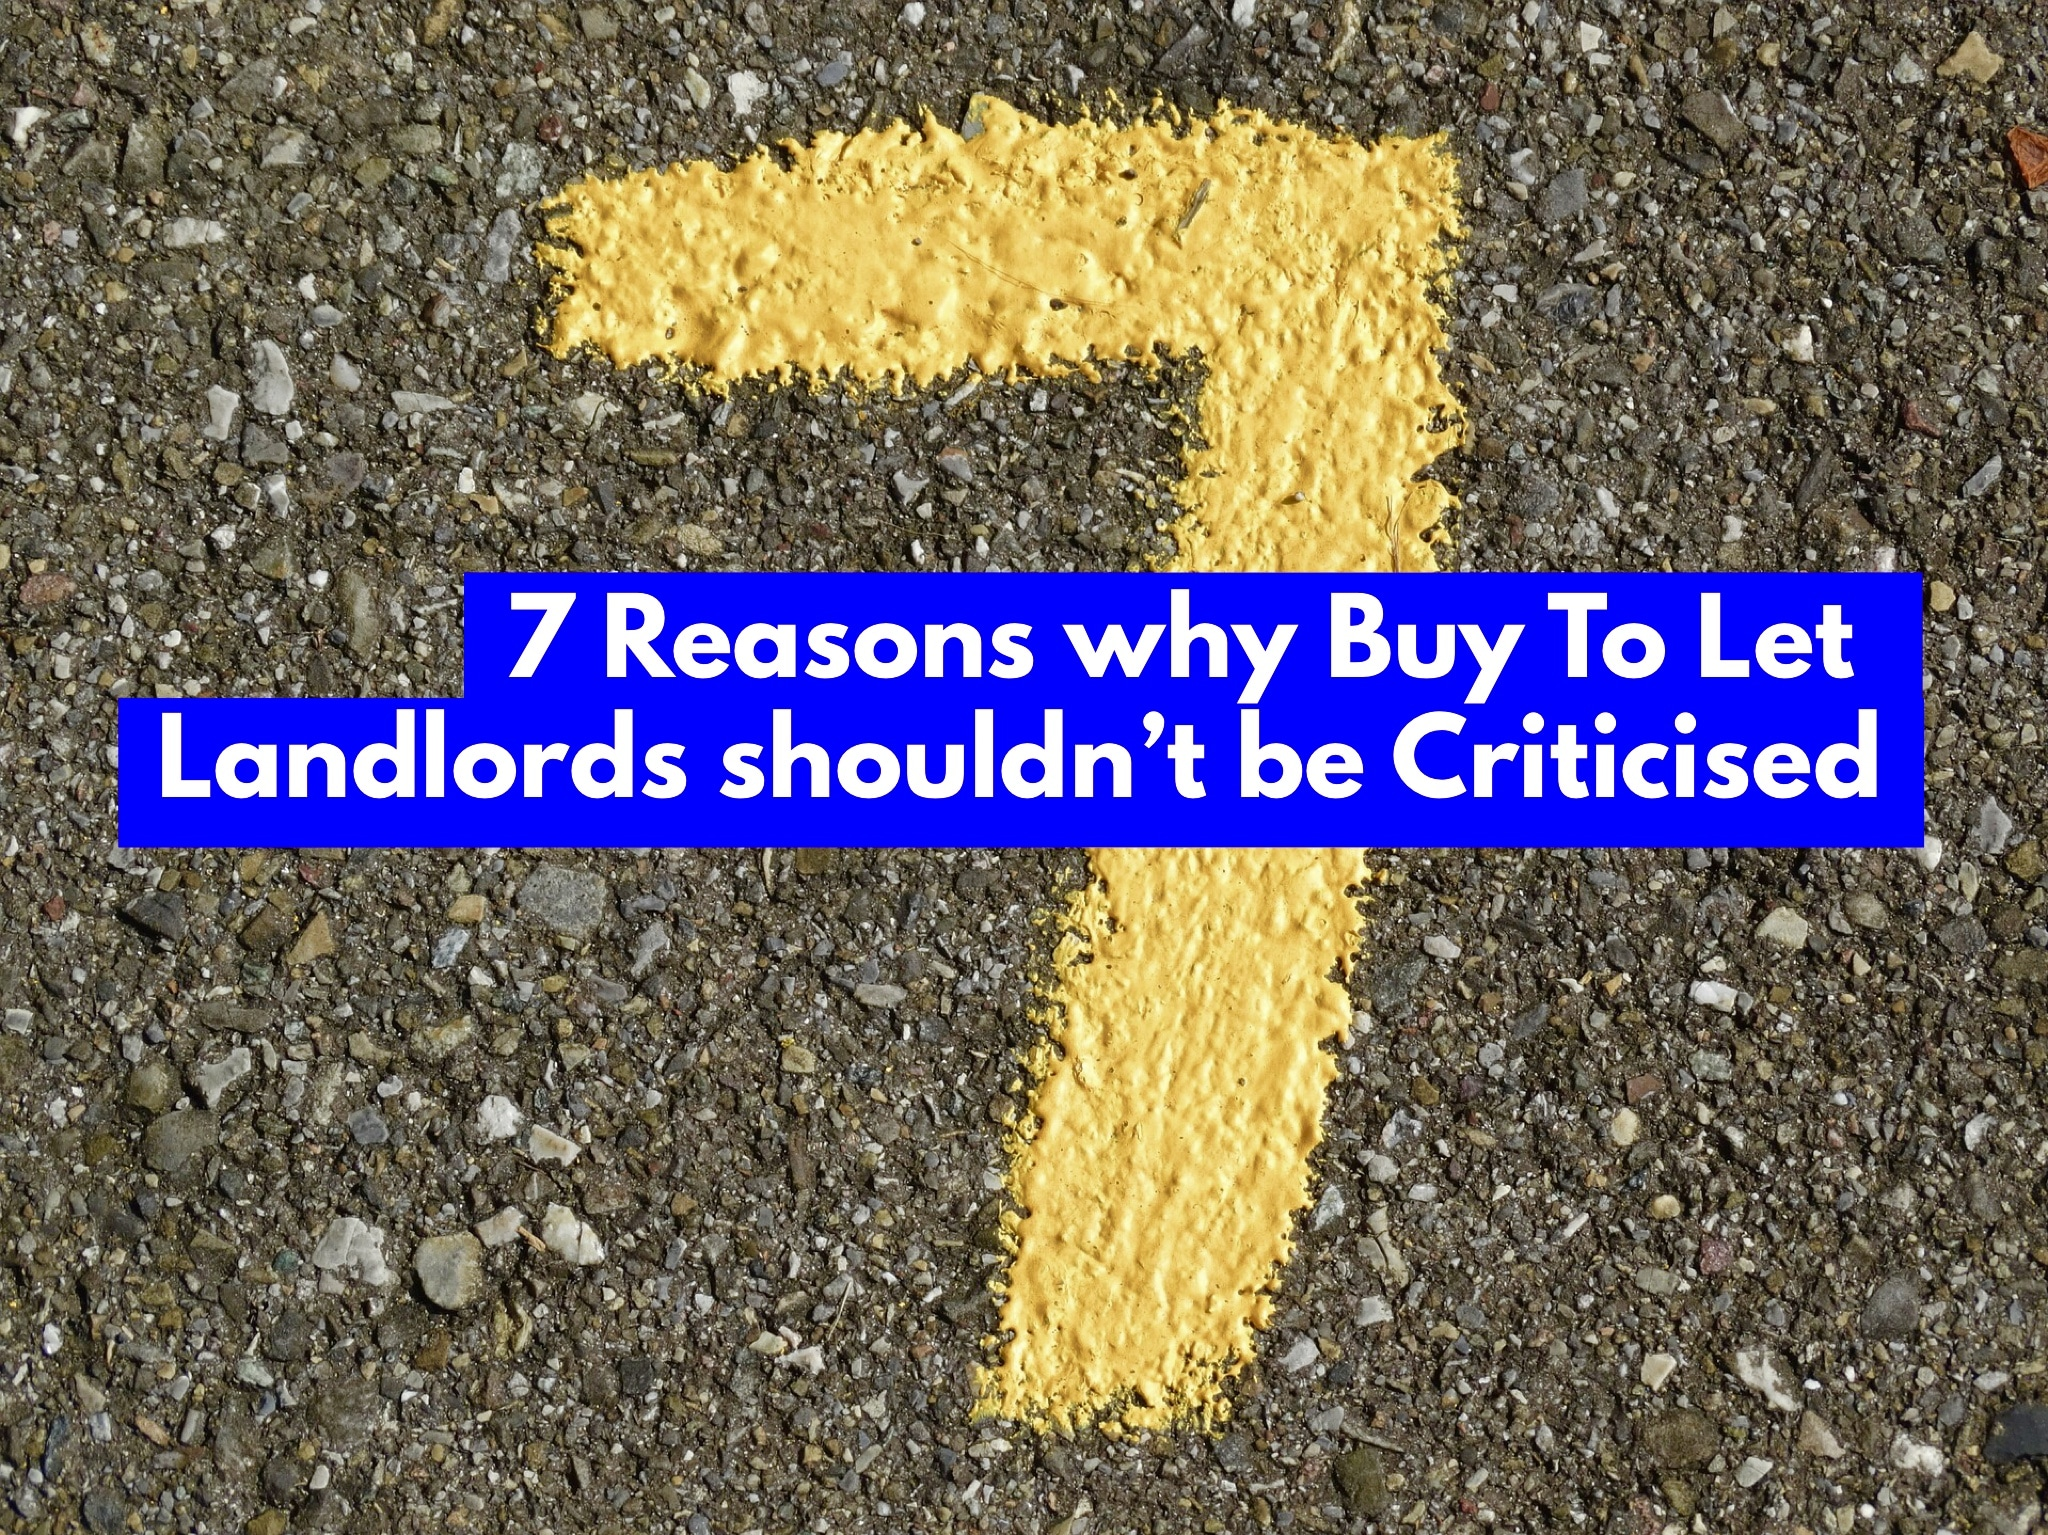 7 Reasons Why Canterbury Buy To Let Landlords Shouldn't Be Criticised